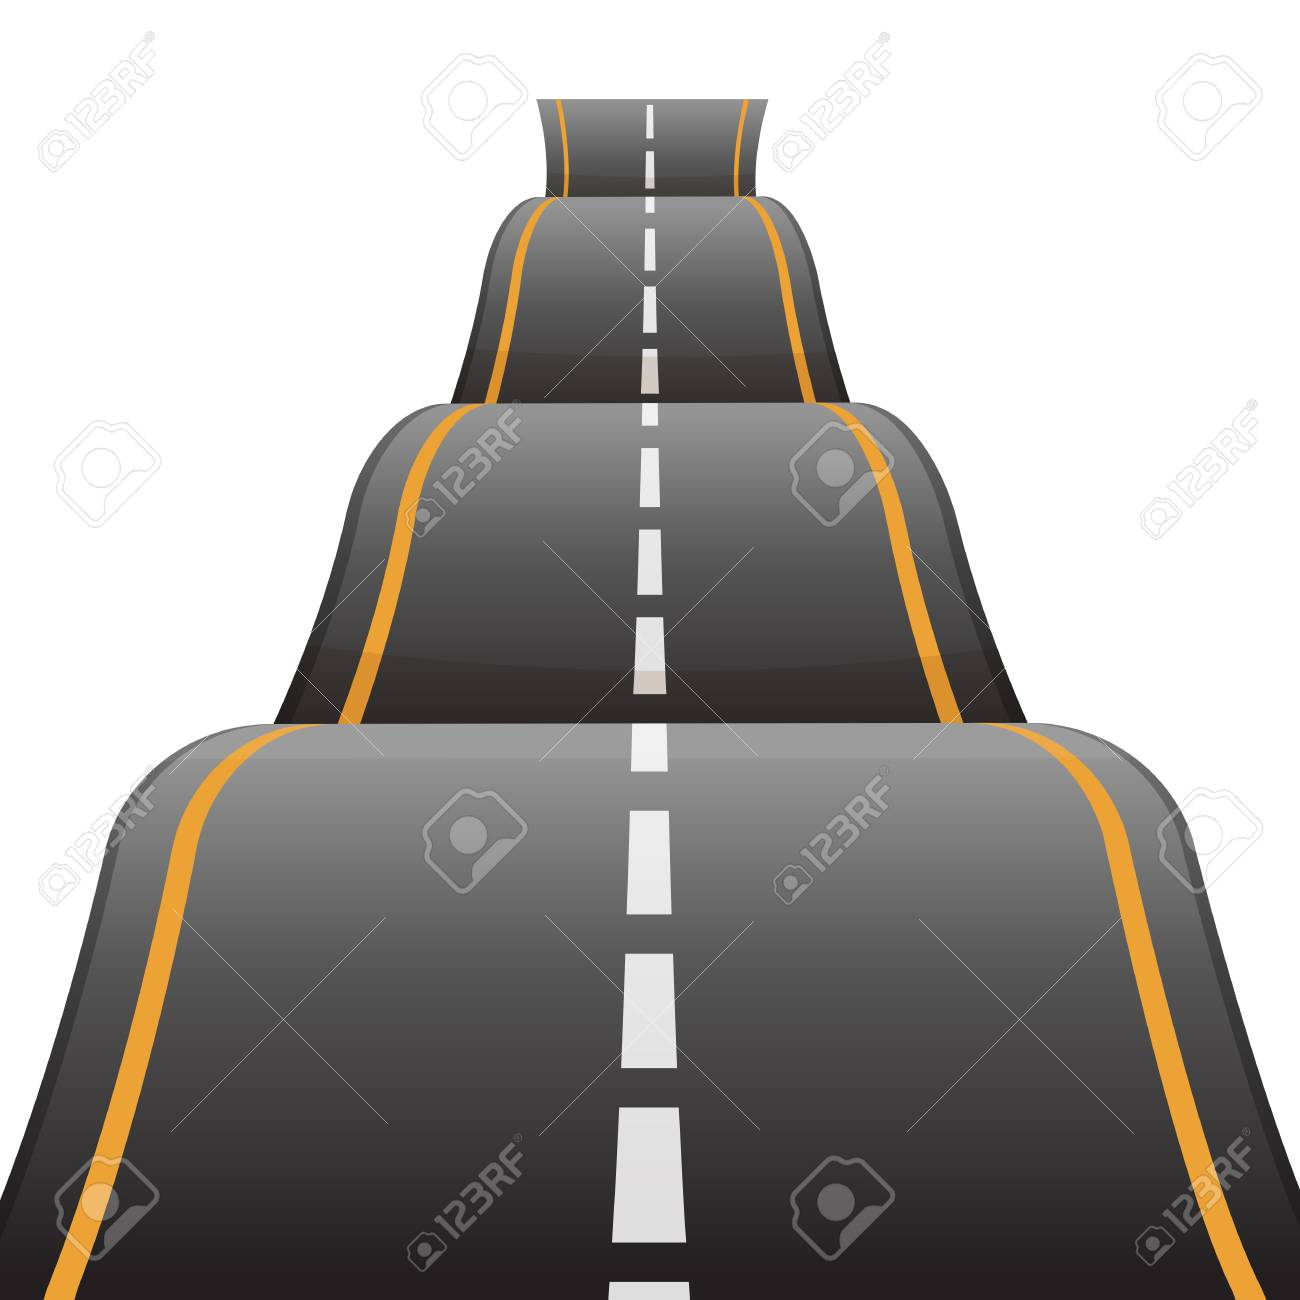 Bumpy road icon uneven dangerous wave path with marking vector - 87282065